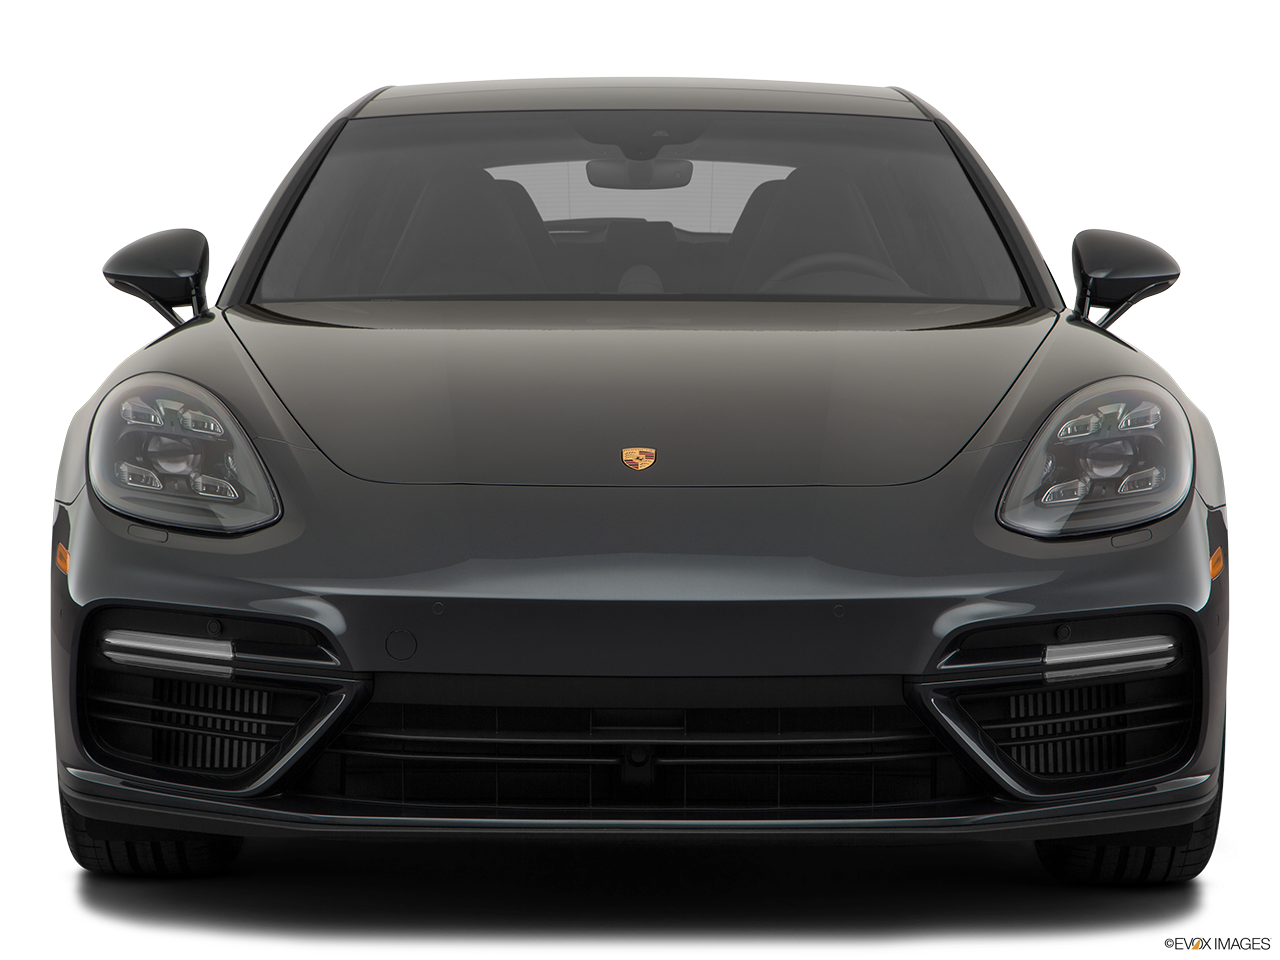 Front view of the Porsche Panamera 4 E-Hybrid